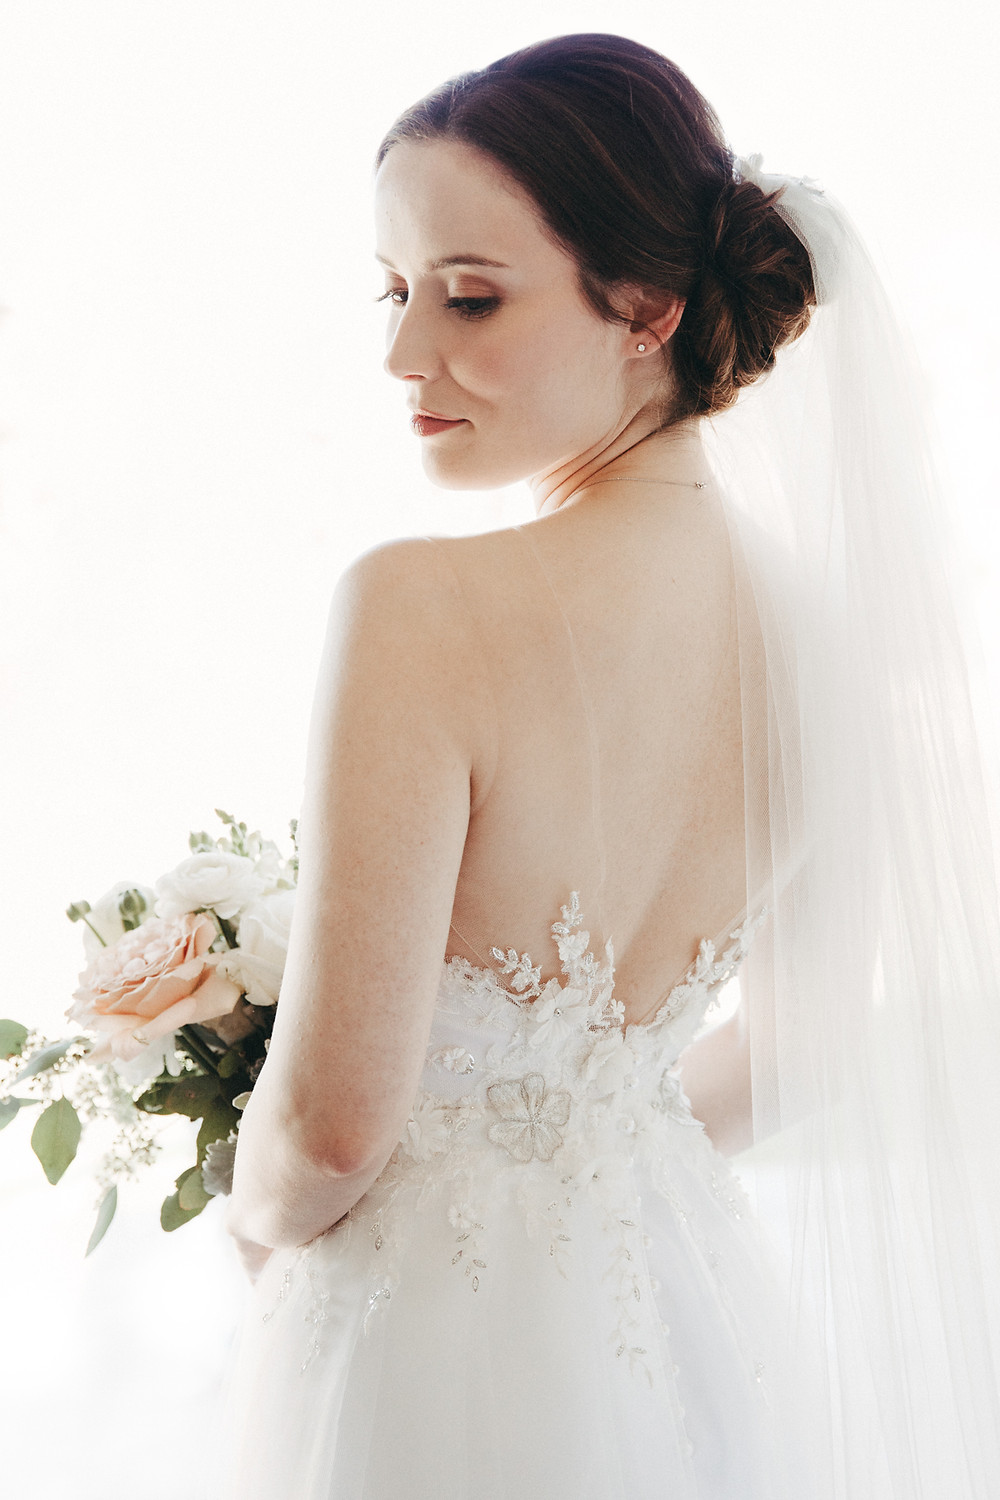 stunning bride at bendooley estate destination wedding venue